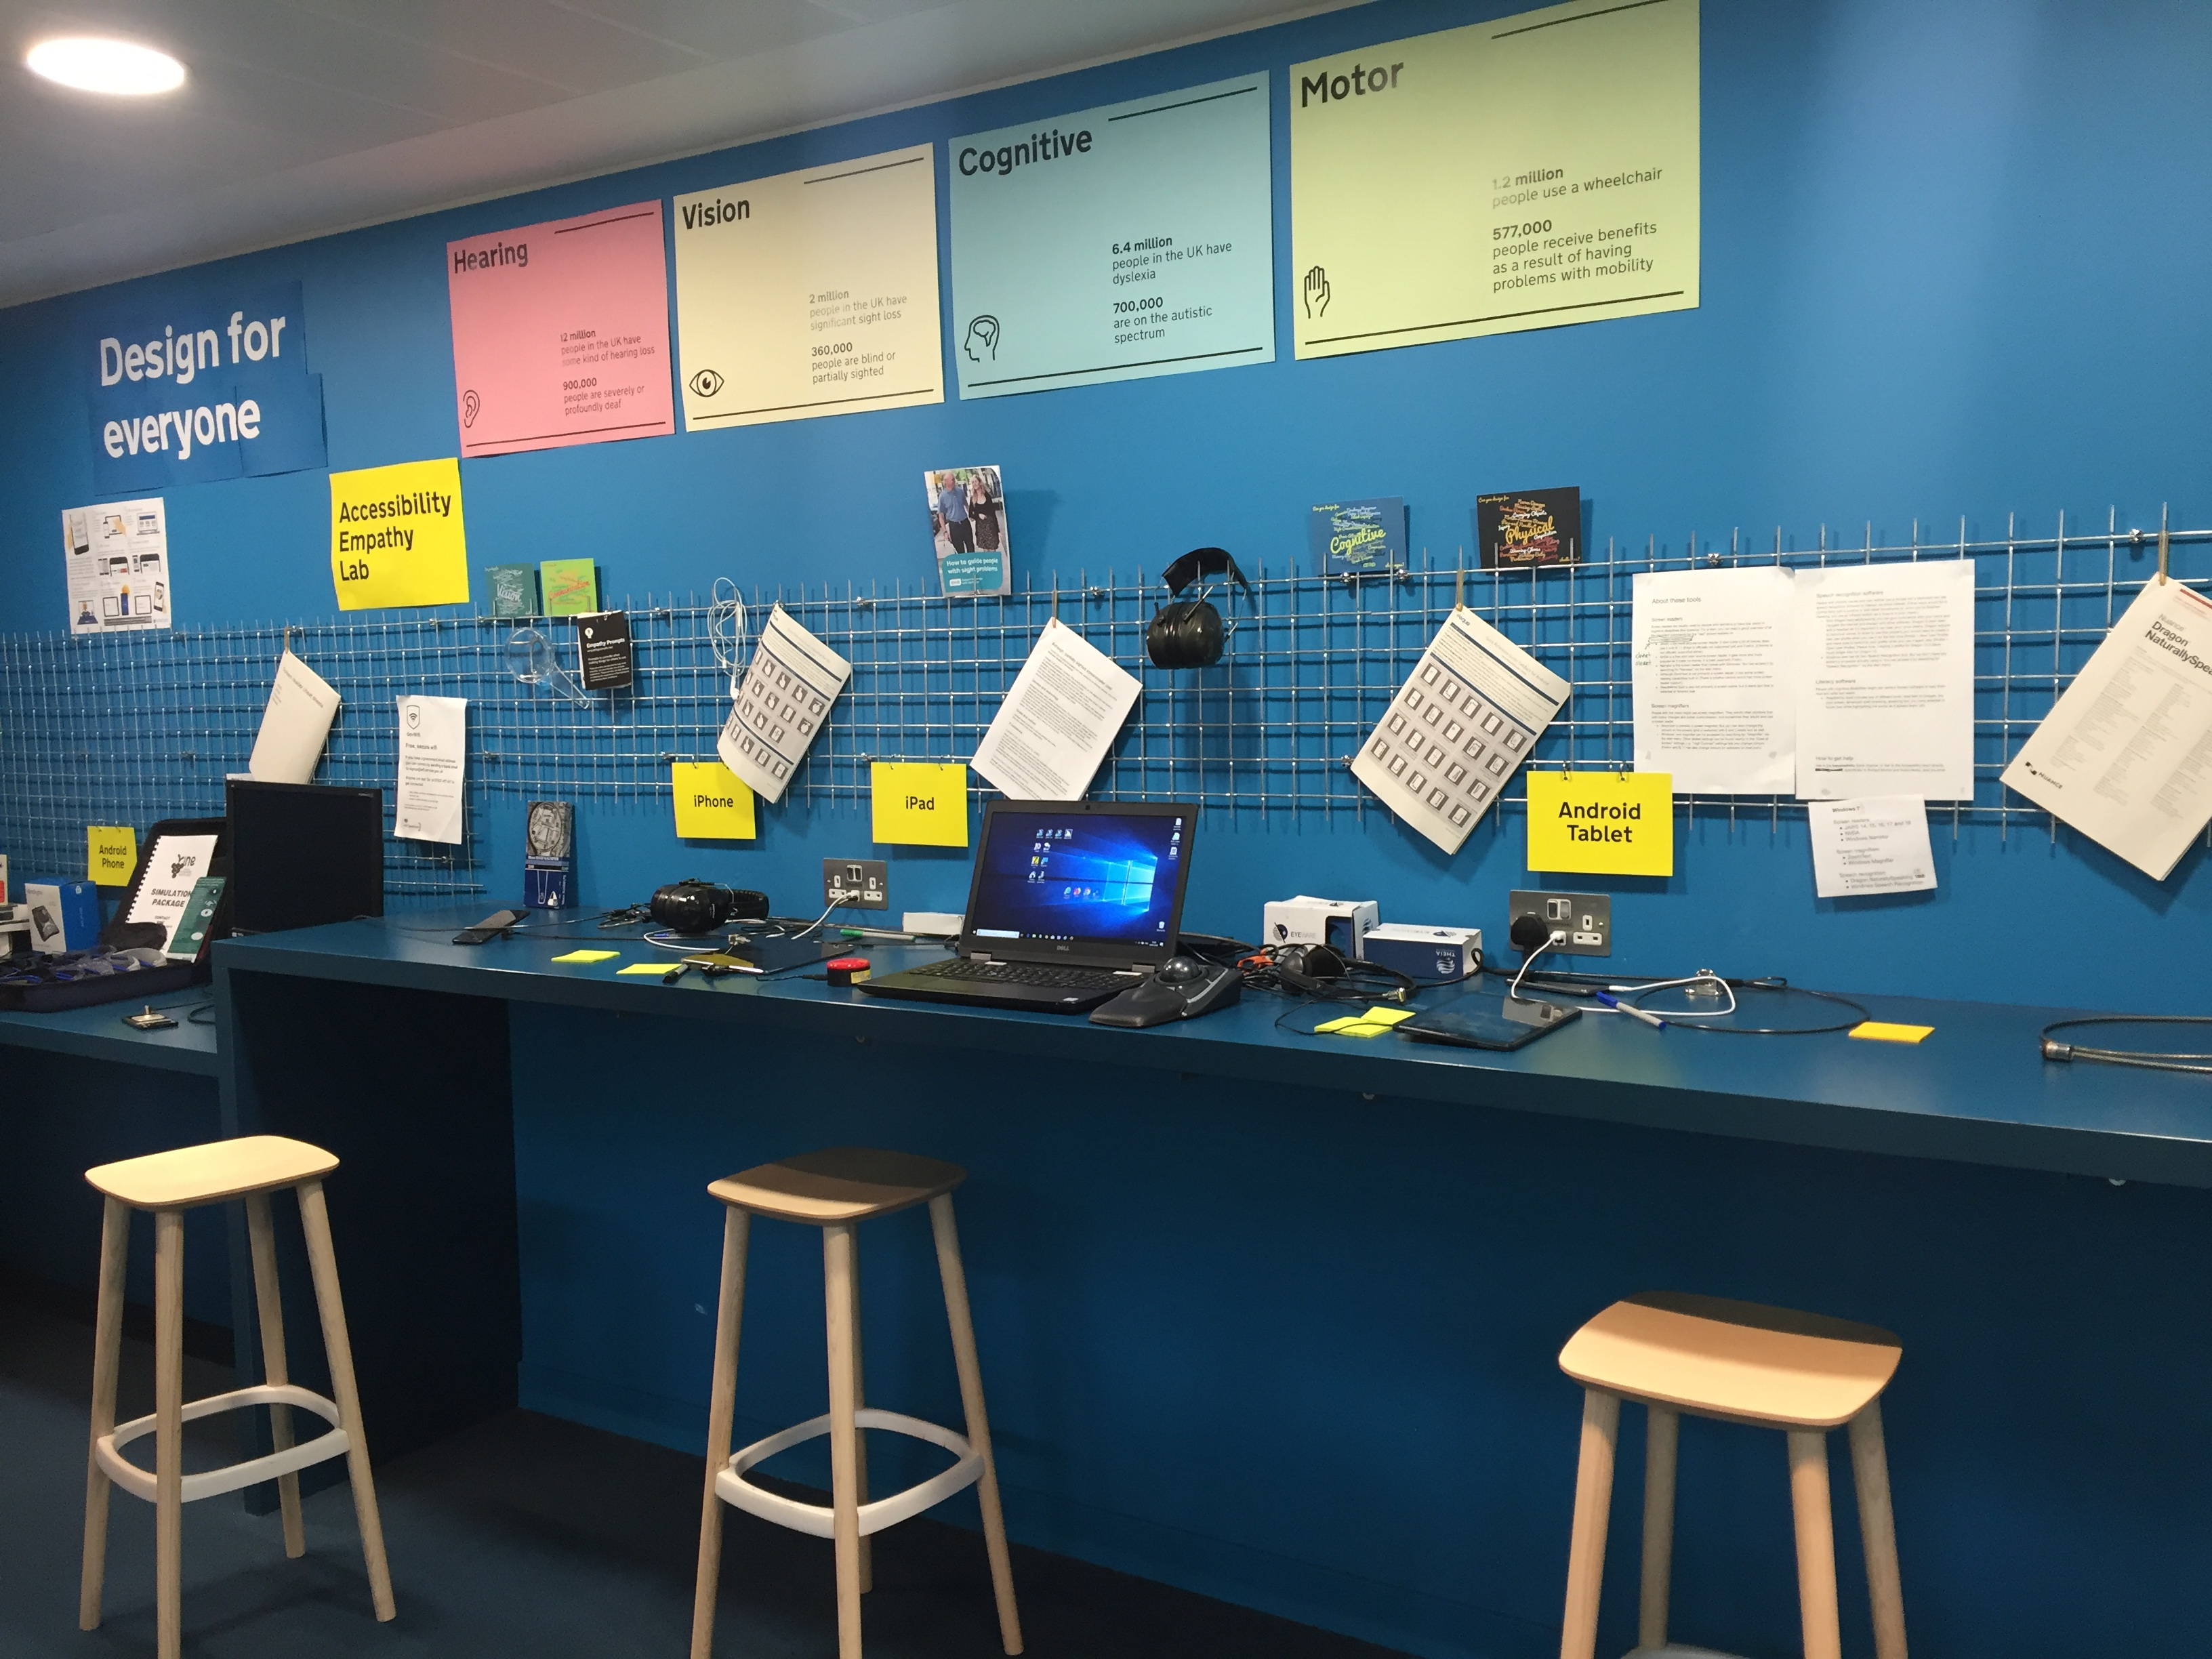 The accessibility empathy lab at the Government Digital Services building